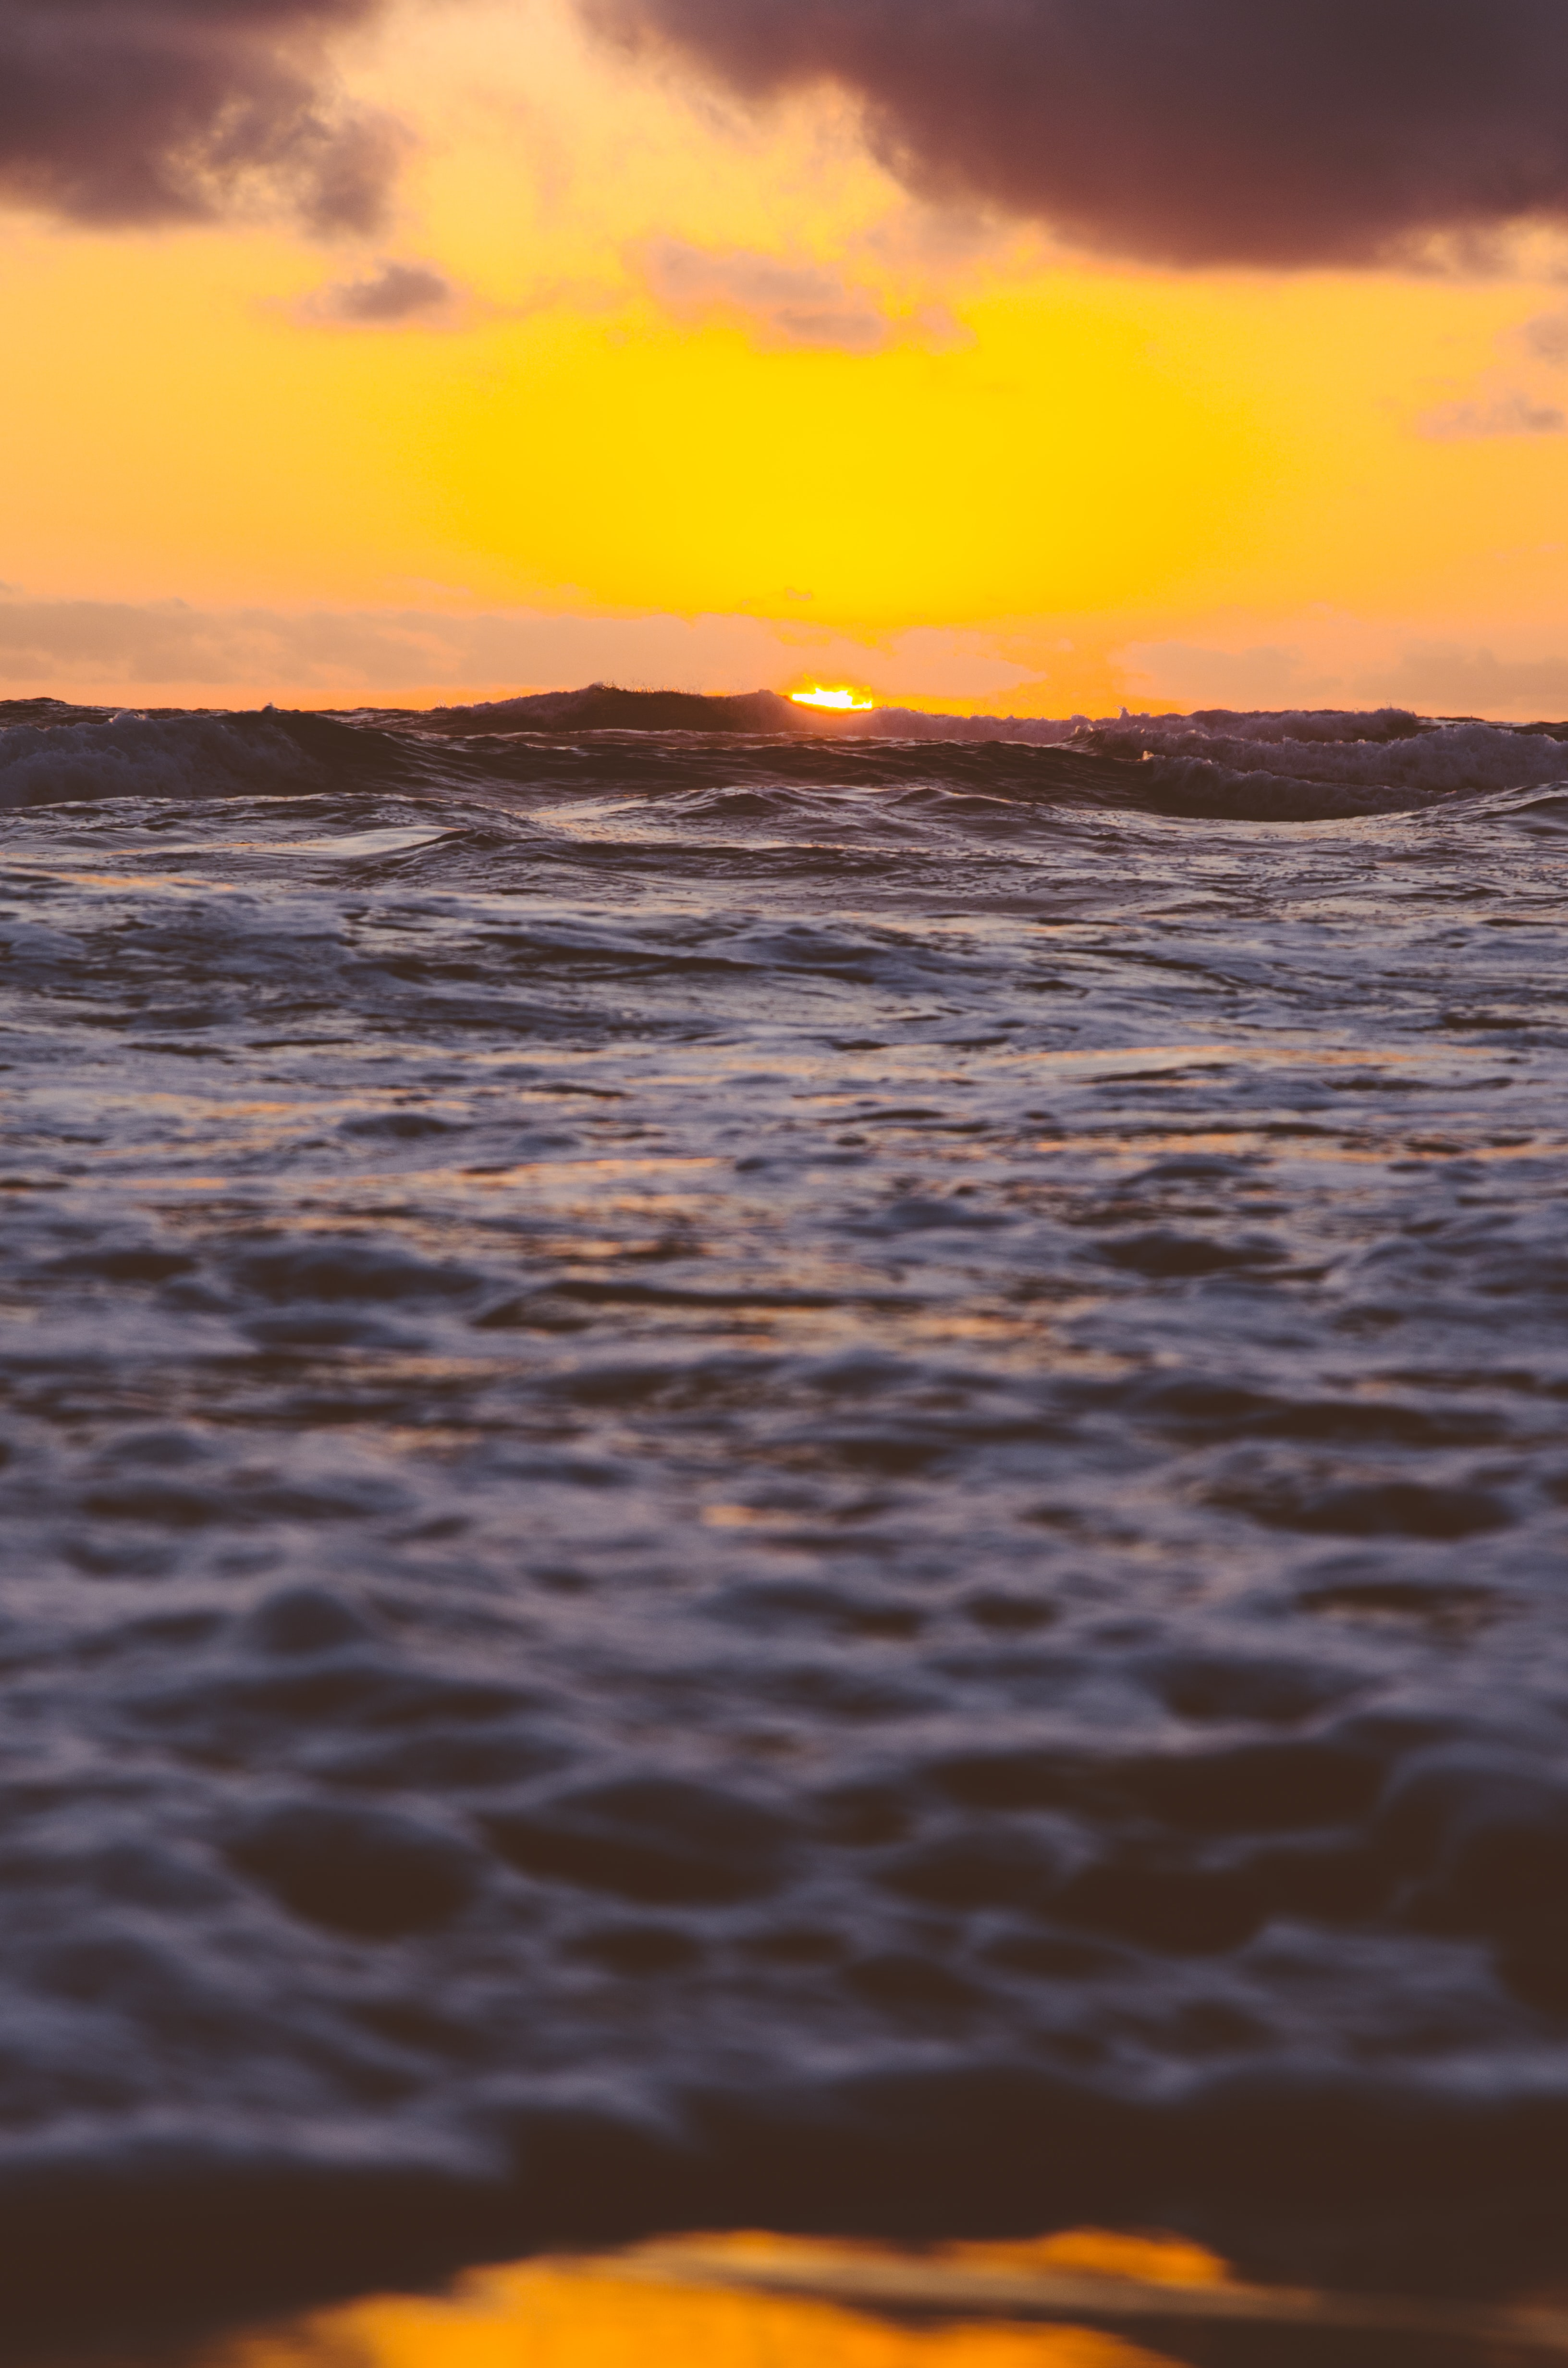 An orange sky at sunset over the waves of the ocean at Venus Bay